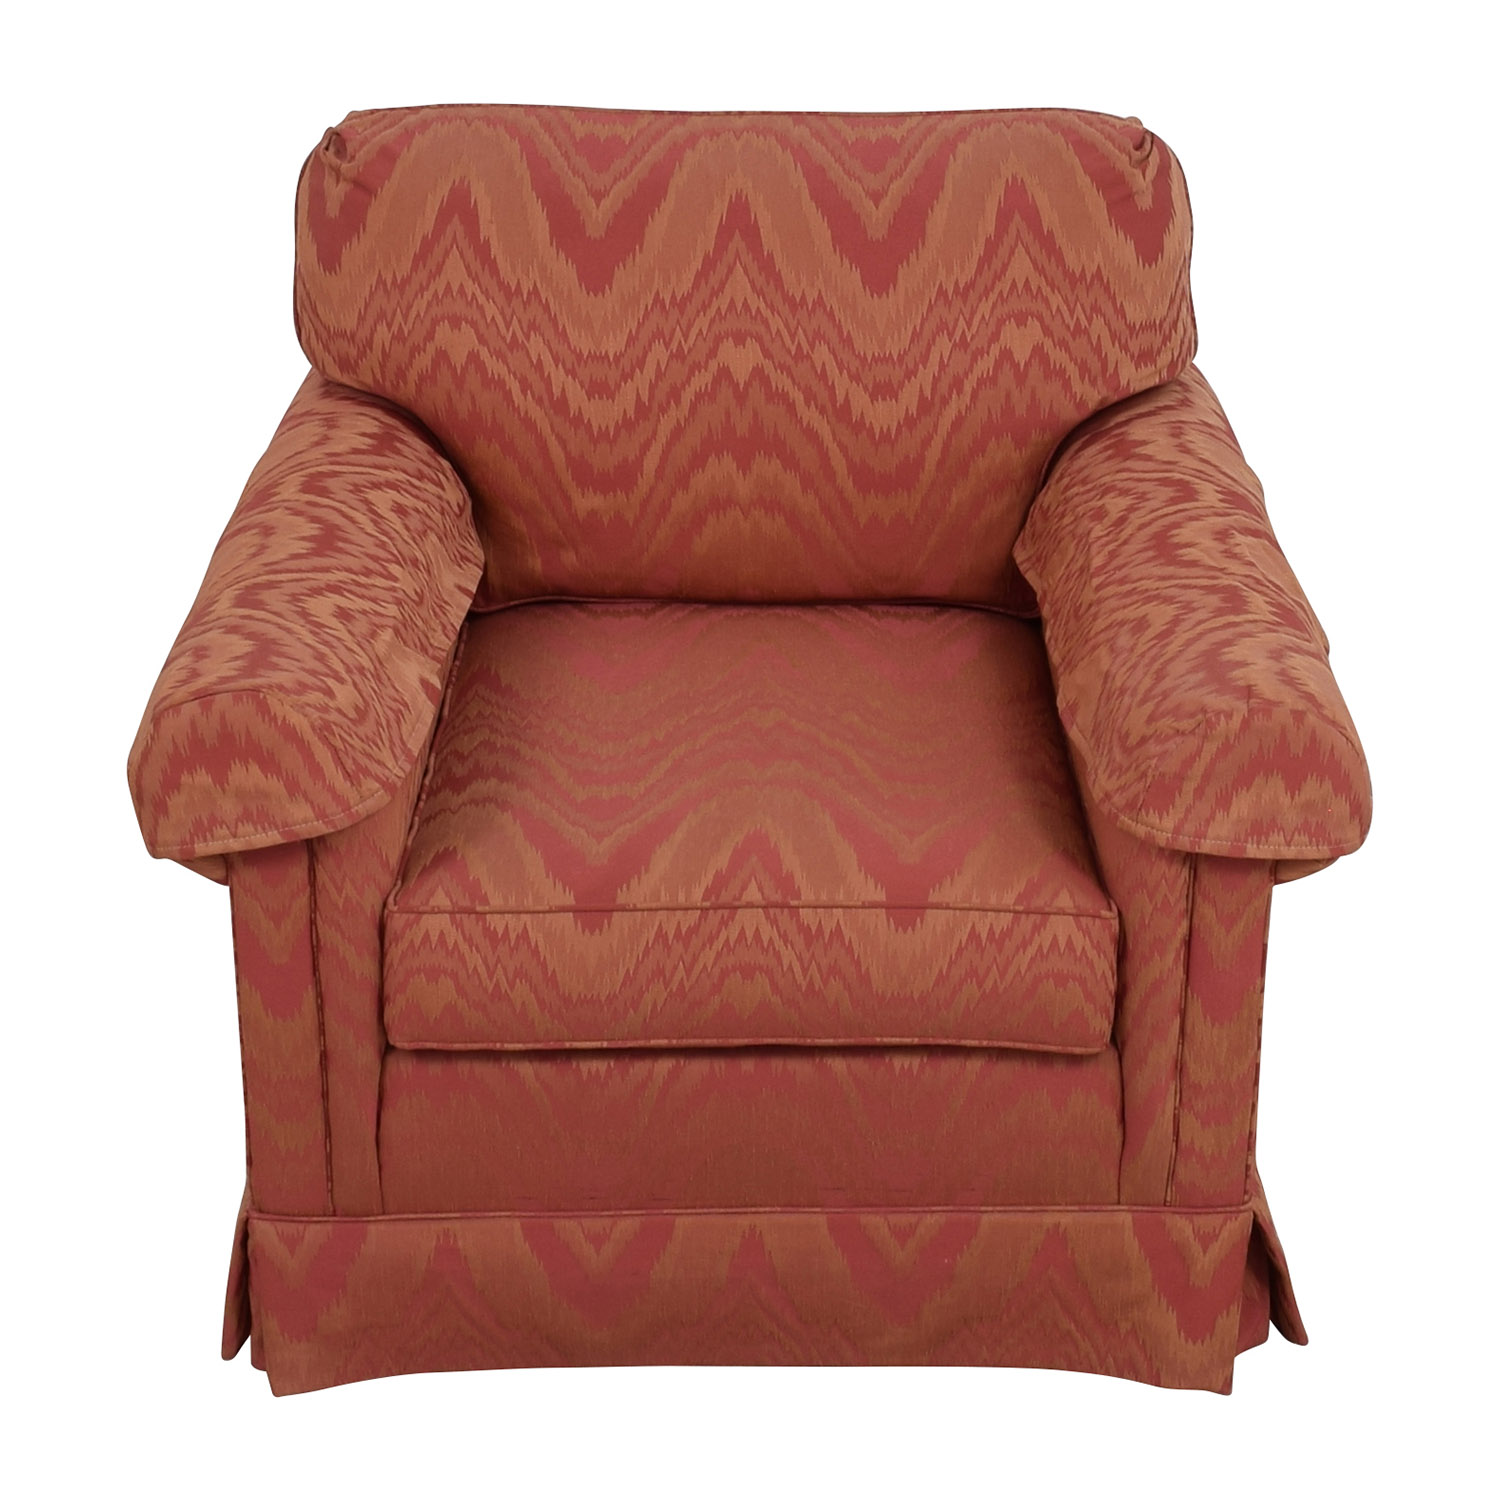 shop Sherrill Orange and Red Patterned Accent Chair Sherrill Chairs